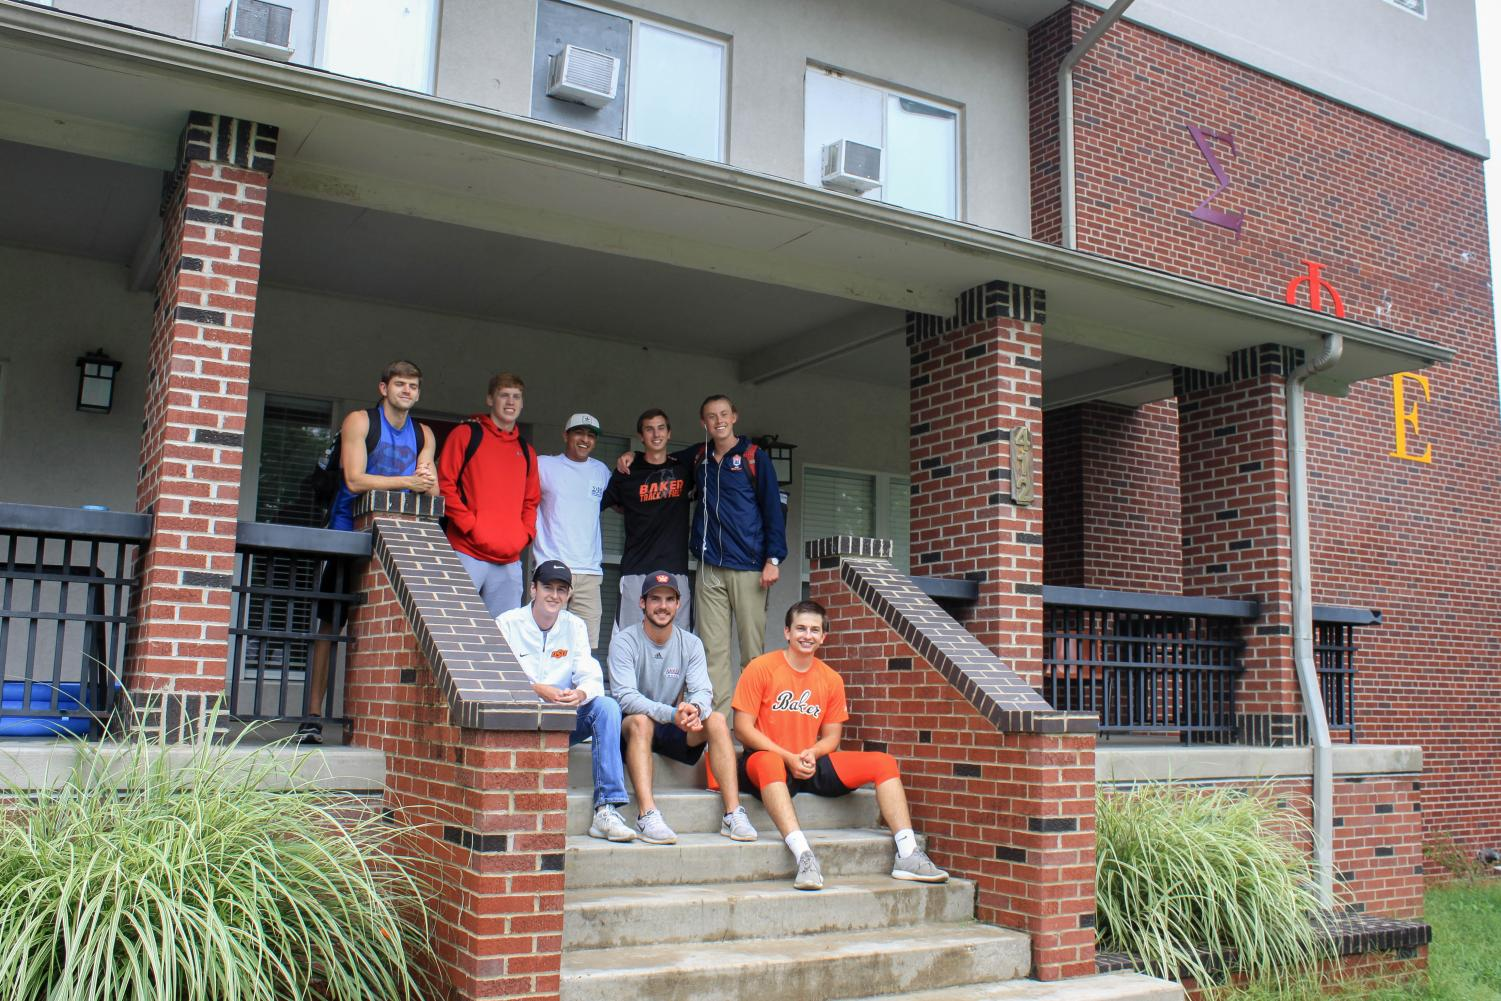 Members of Sigma Phi Epsilon pose in front of their house on Sixth Street across from campus. Sig Ep is the Kansas Alpha chapter, making them the first chapter established in the state. The fraternity welcomed 20 new members into their brotherhood this fall recruitment.